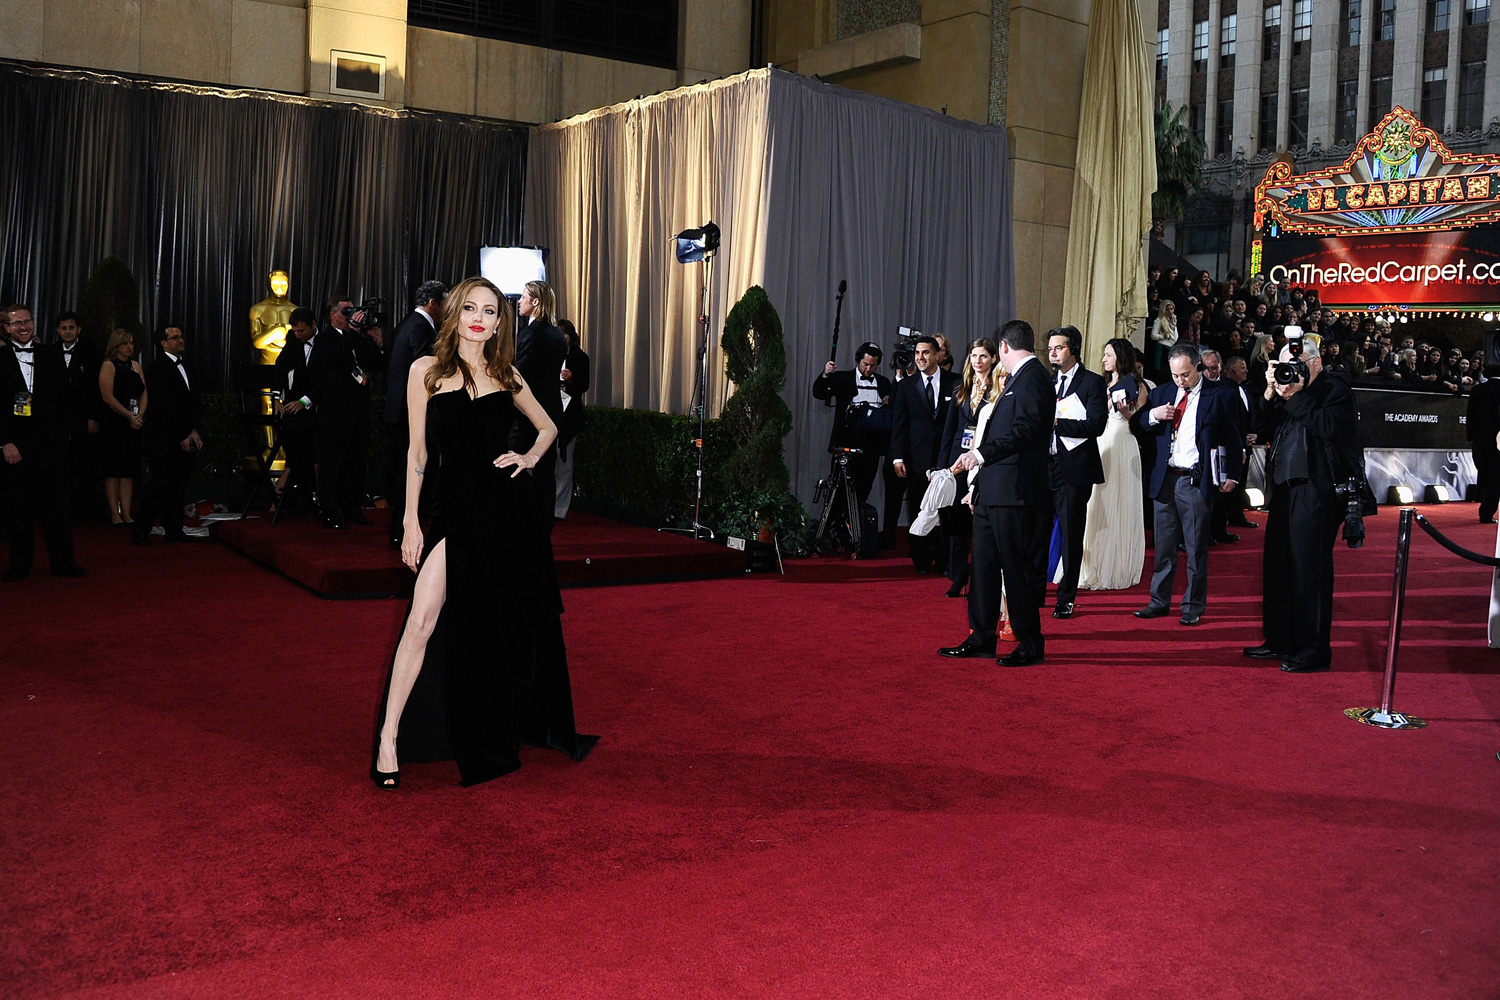 Feb. 26, 2012. Actress Angelina Jolie arrives at the 84th Annual Academy Awards held at the Hollywood & Highland Center in Hollywood, Calif.